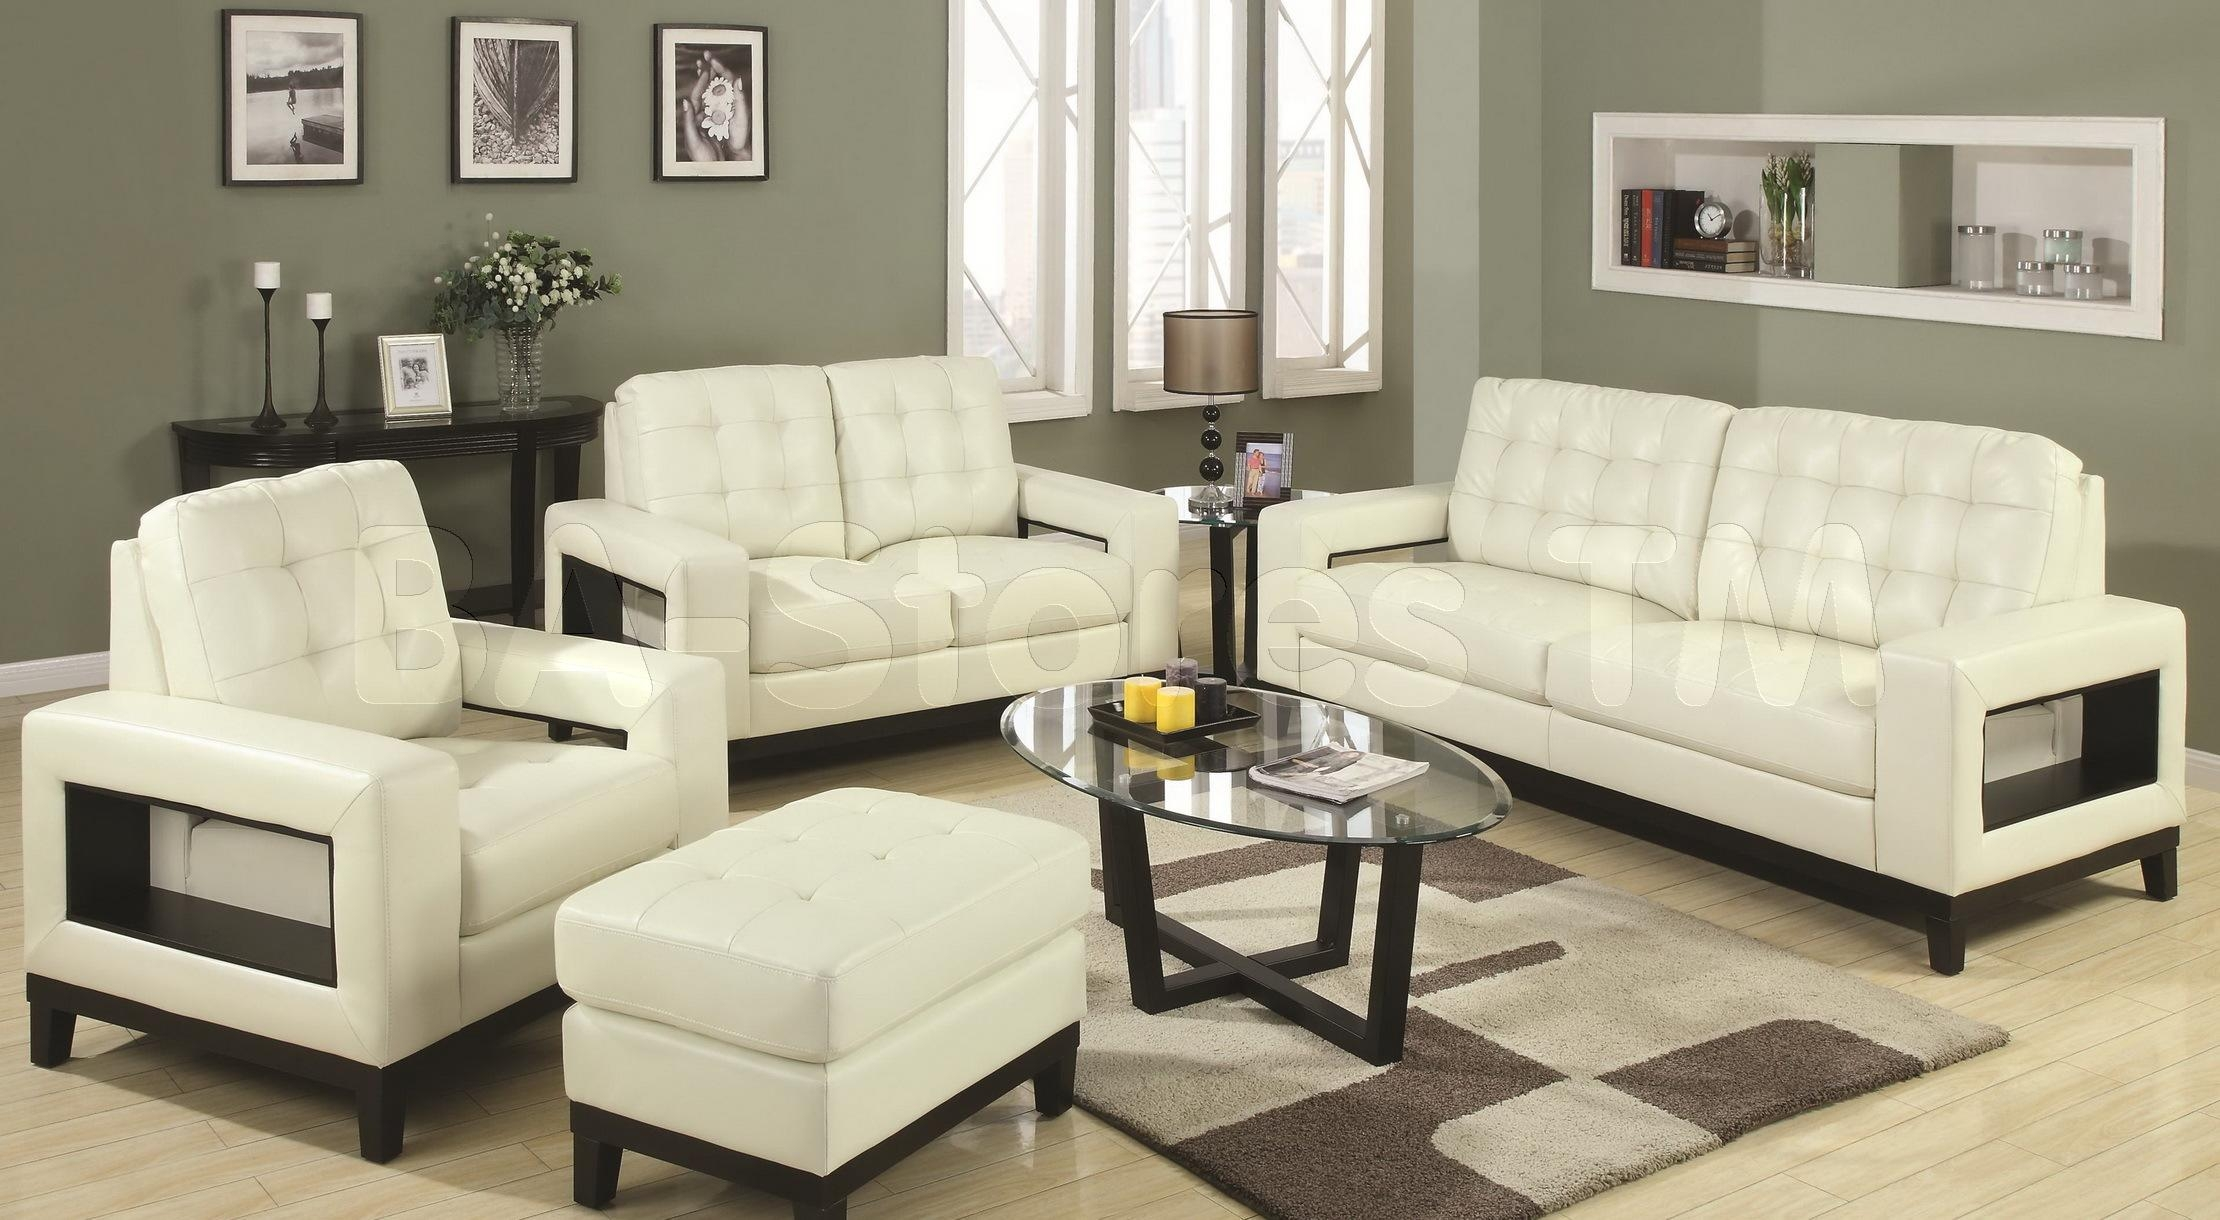 White Sofa Set Living Room Best Living Room Sofa Ideas Living Room Intended For Sofa Chairs For Living Room (View 9 of 20)